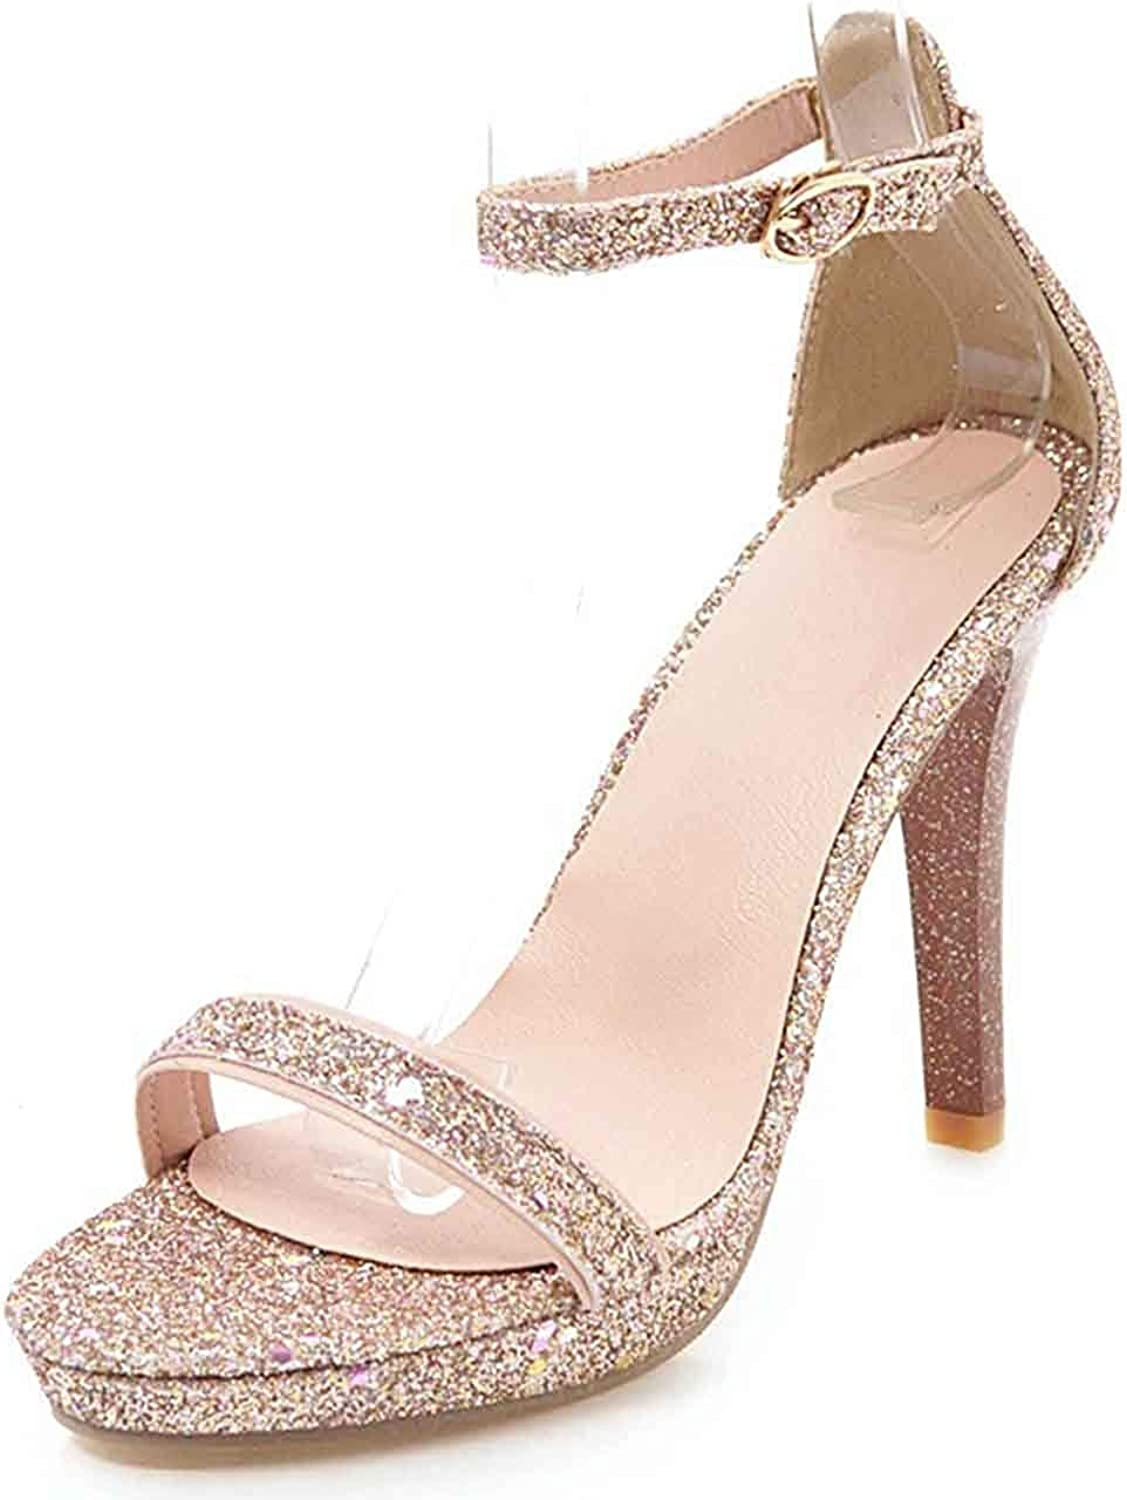 Unm Women's Buckle Strap Sandals with Platform - Comfy High Stiletto Heels - Open Toe D'Orsay Sequined